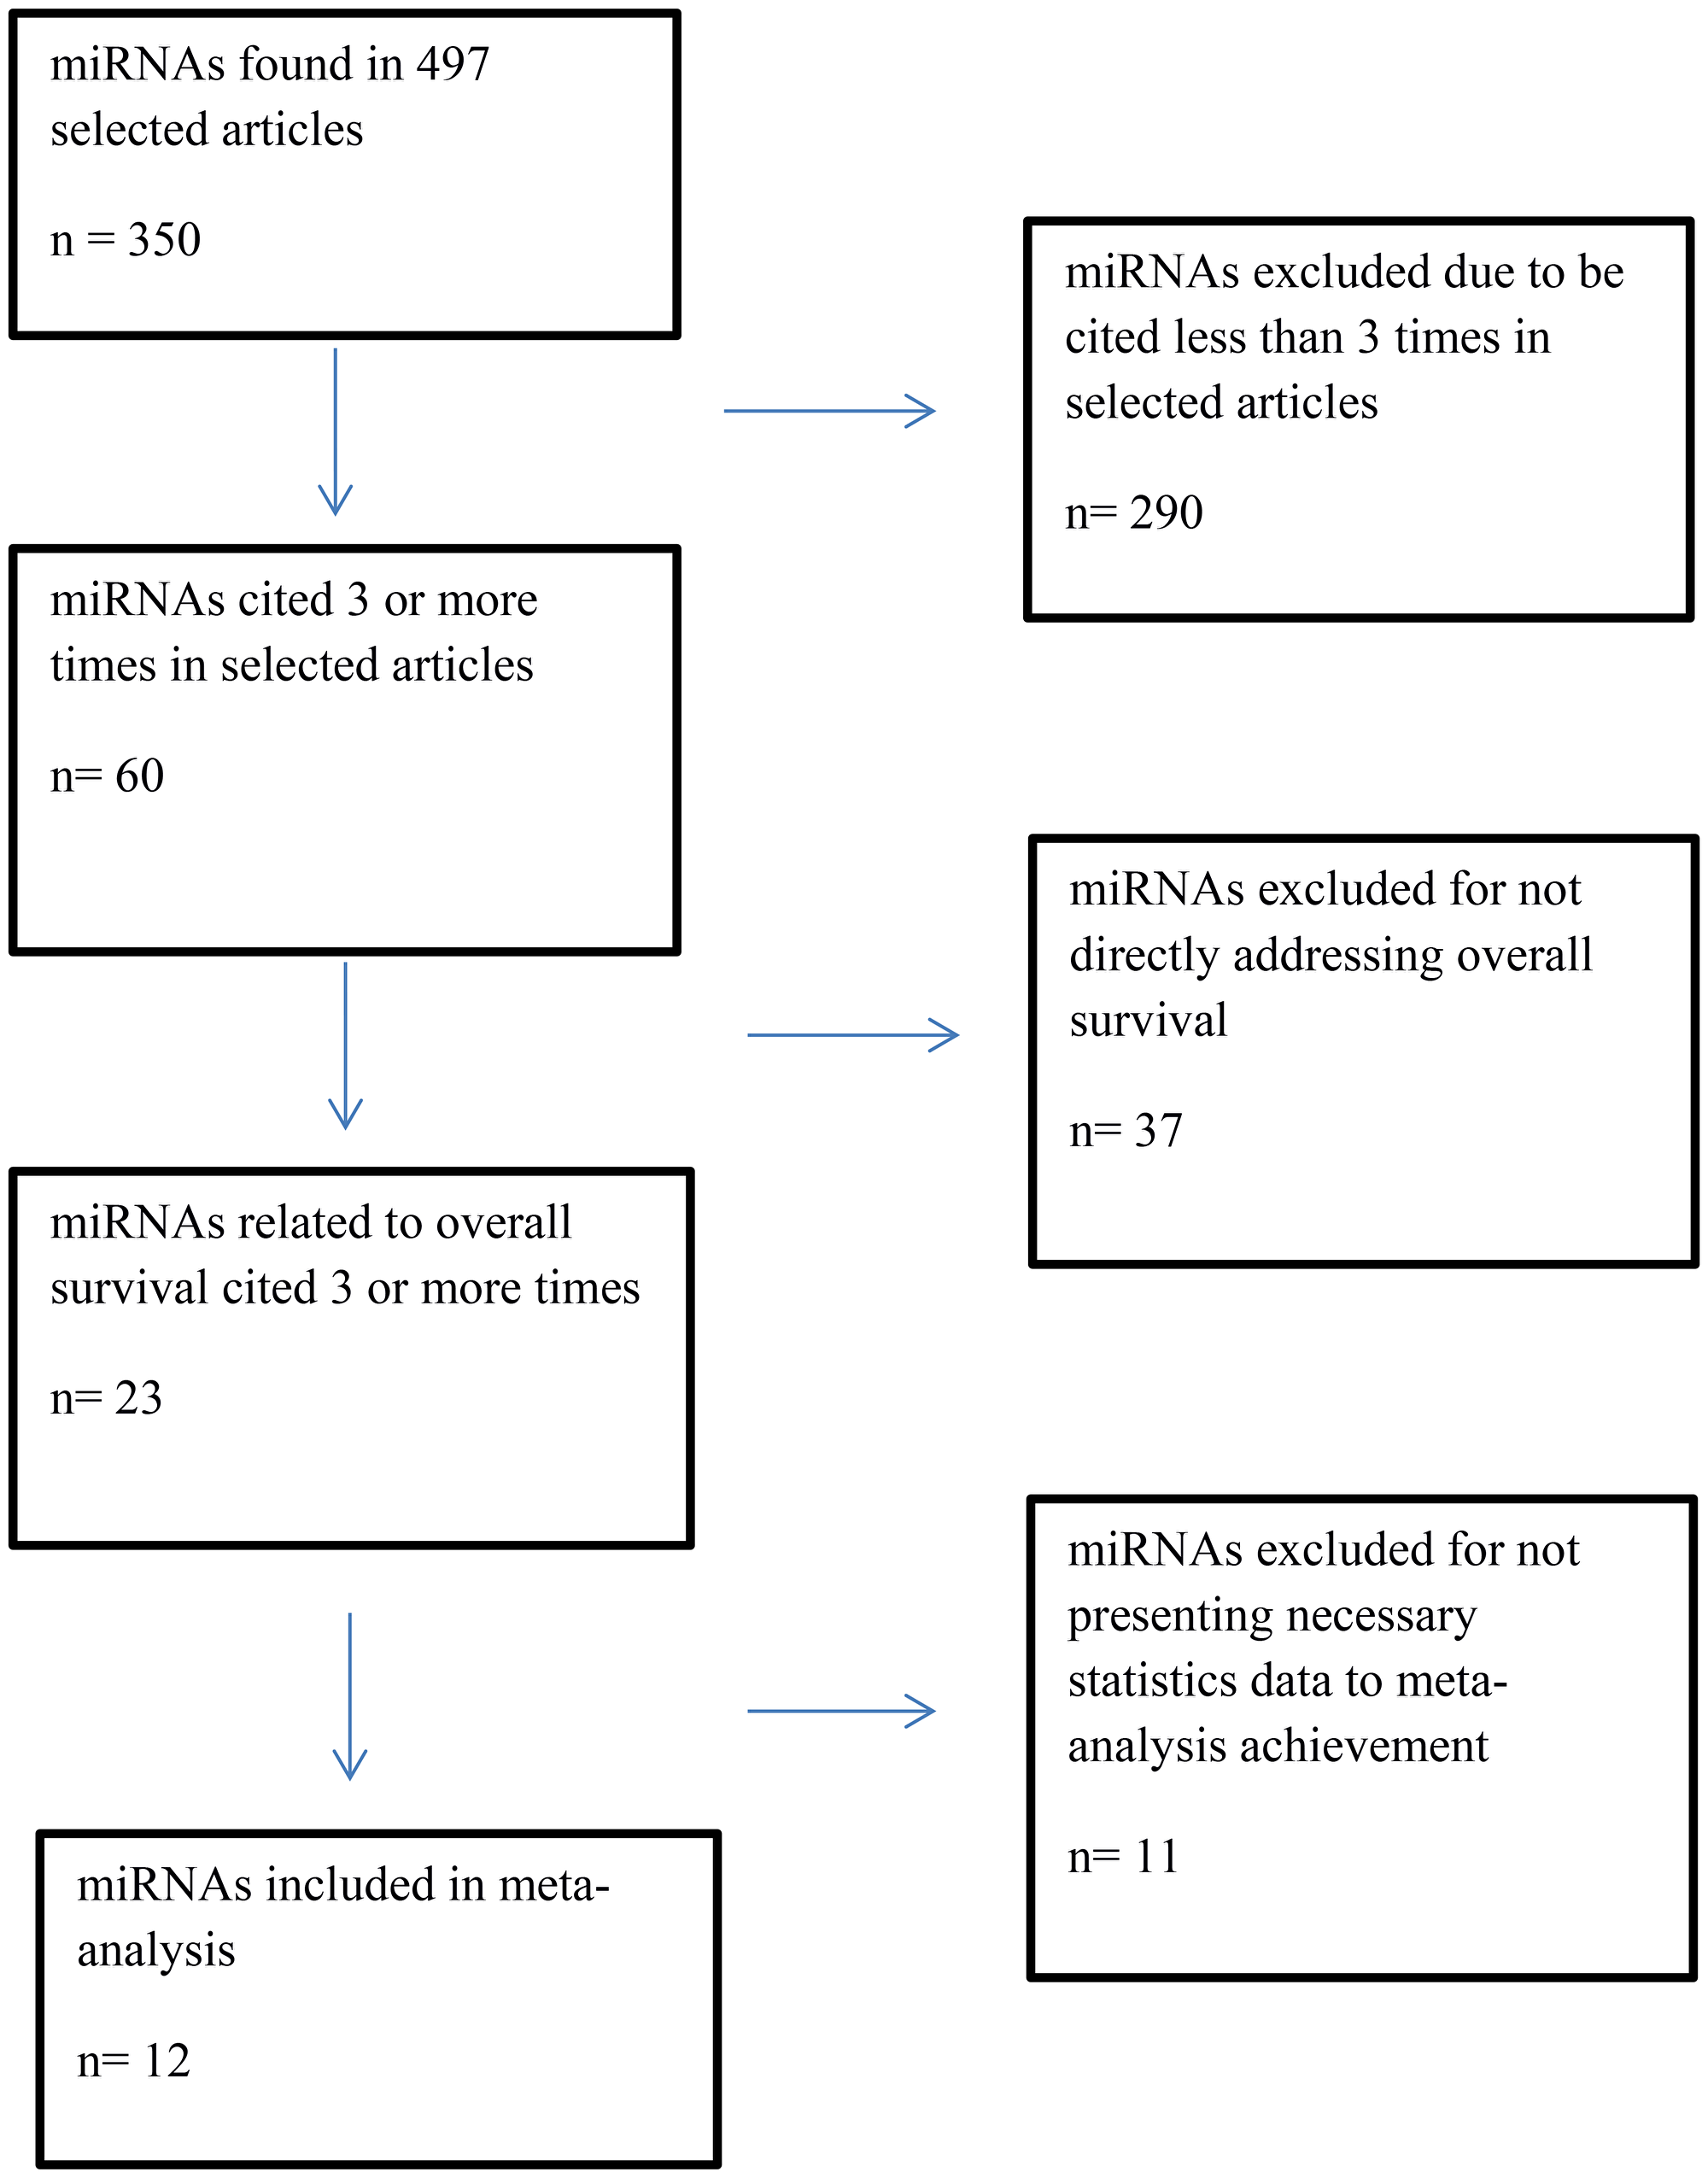 Flowchart of selection of miRNAs to overall survival meta-analysis.